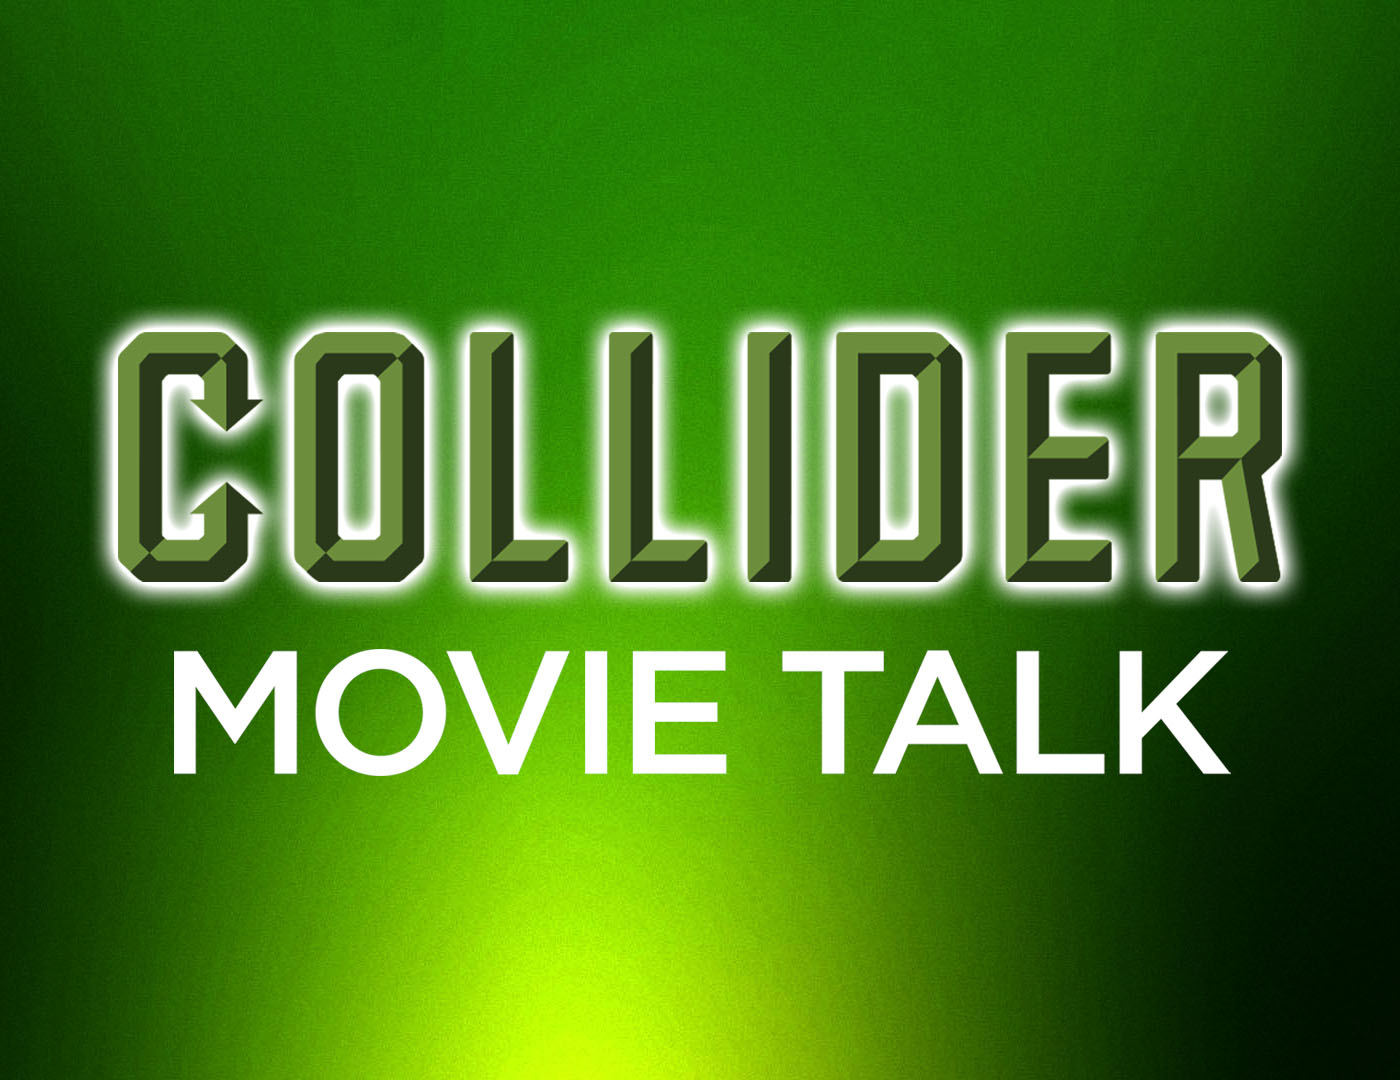 Collider Movie Talk - Michael Bay Confirmed To Direct Transformers 5